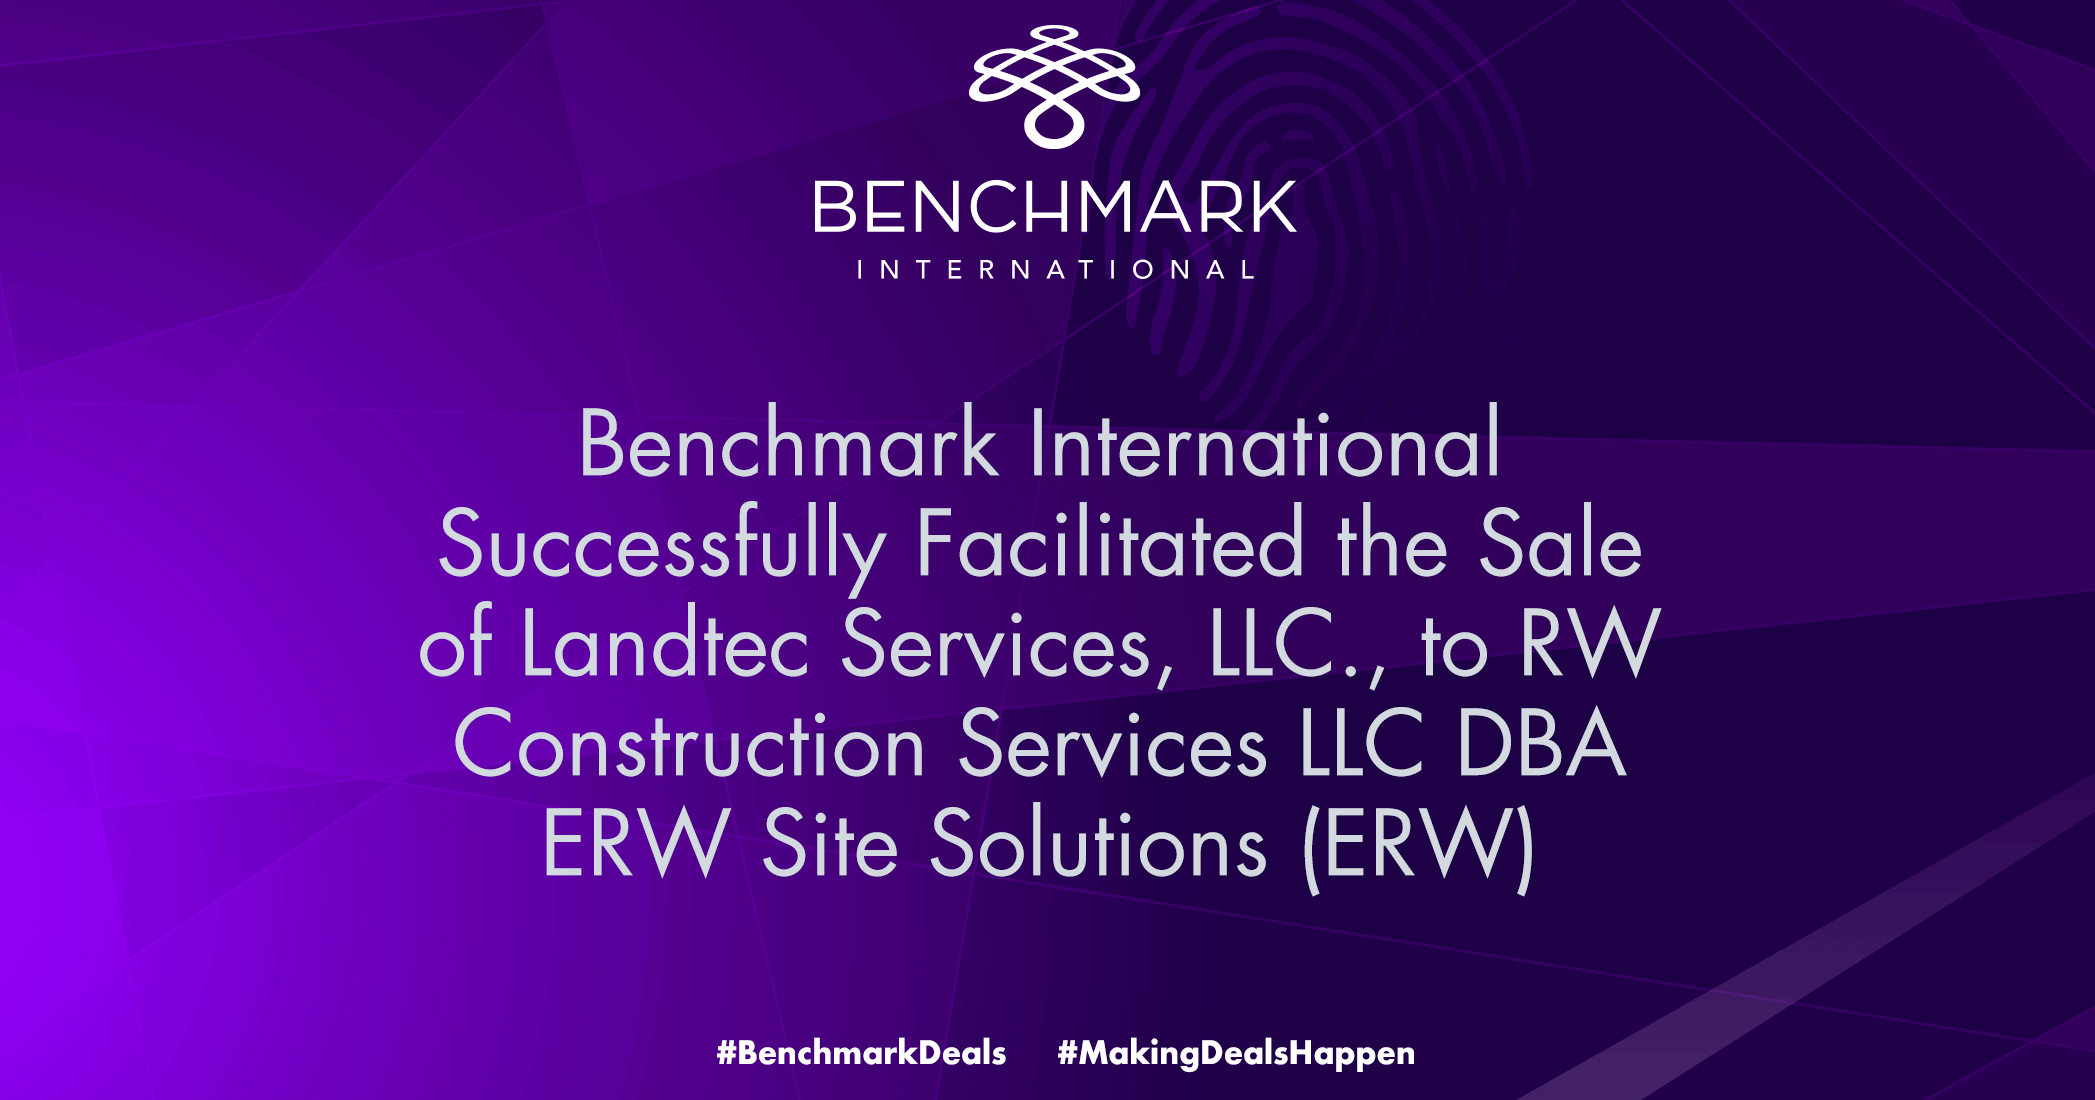 Benchmark International successfully facilitated the sale of Landtec Services, LLC., to RW Construction Services LLC DBA ERW Site Solutions (ERW)